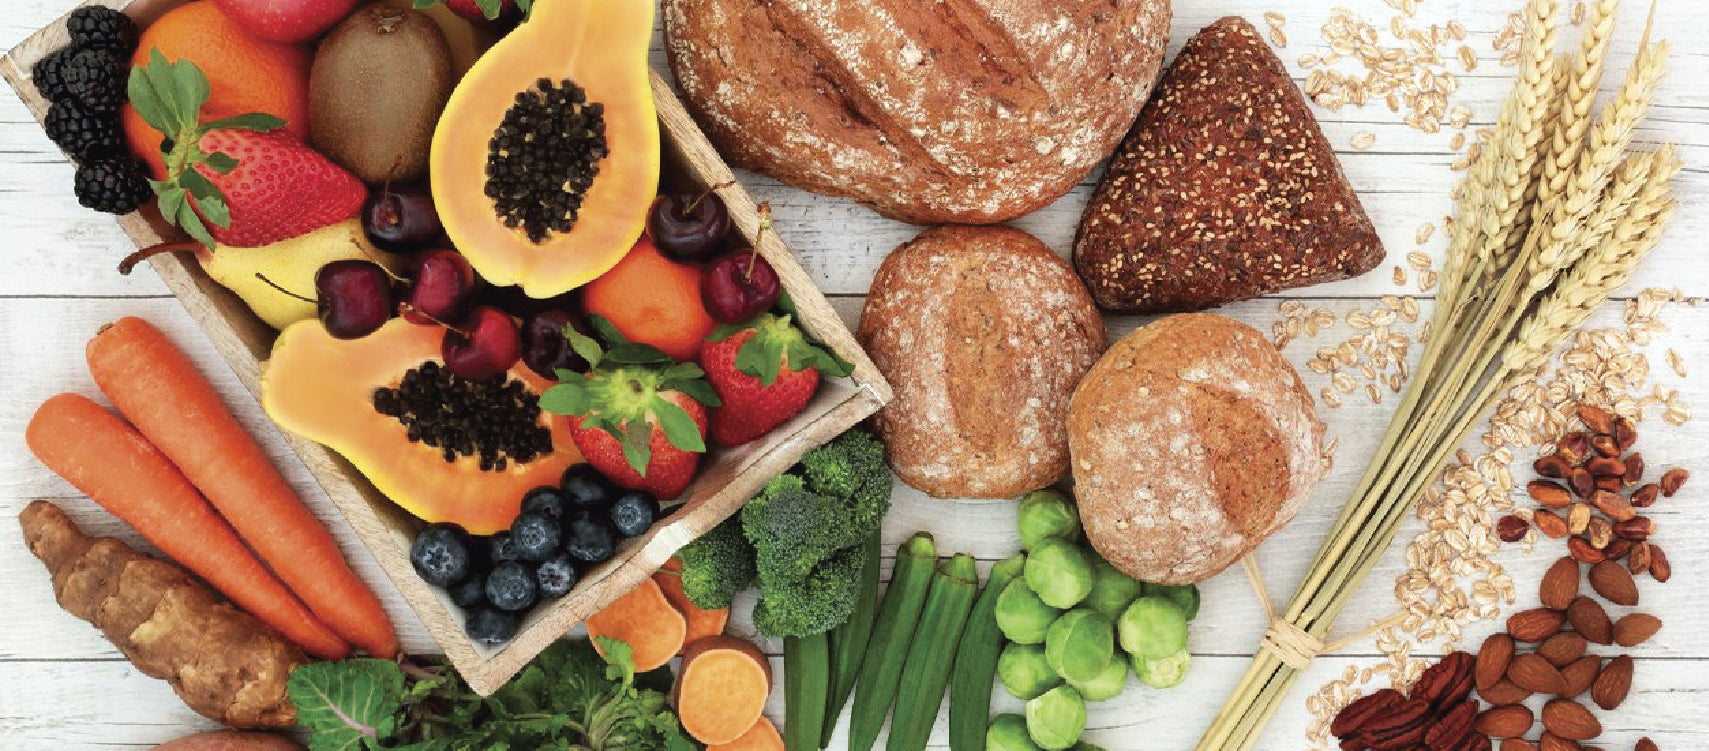 Protein rich foods like eggs and nuts